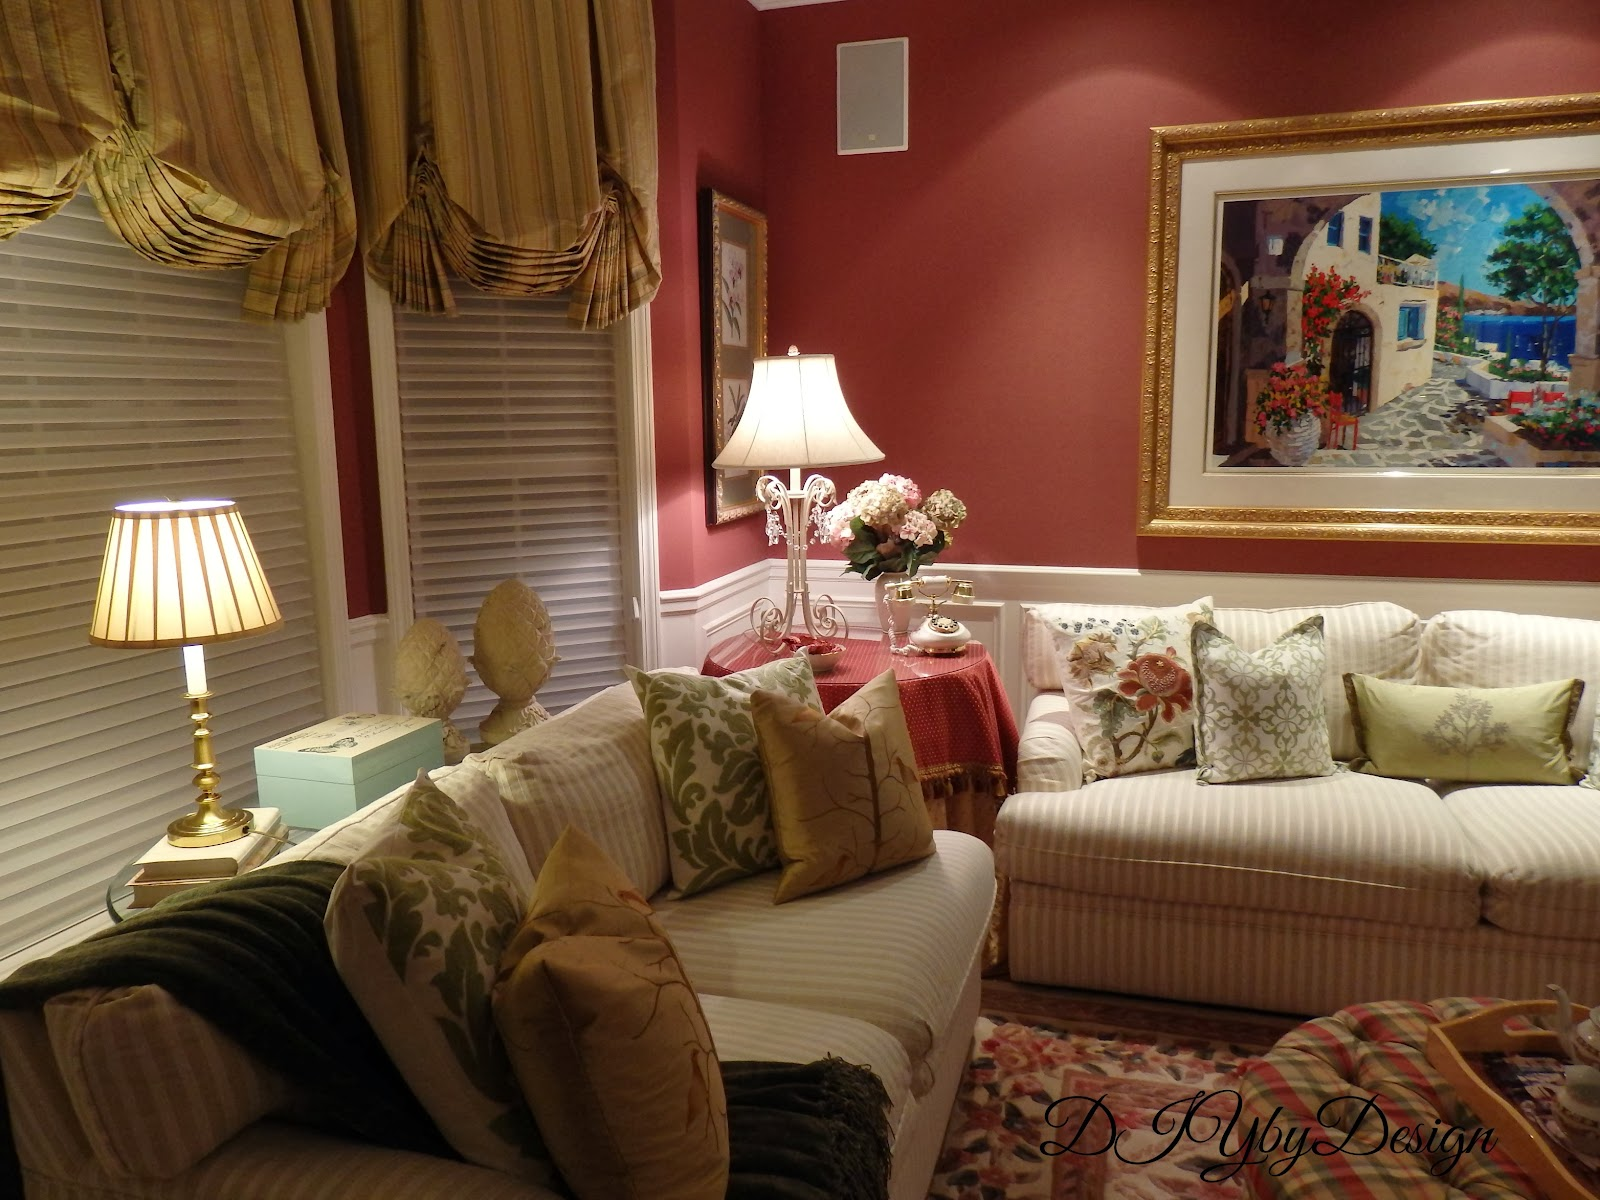 Diy by design new ethan allen accessories and more for Living room ideas ethan allen